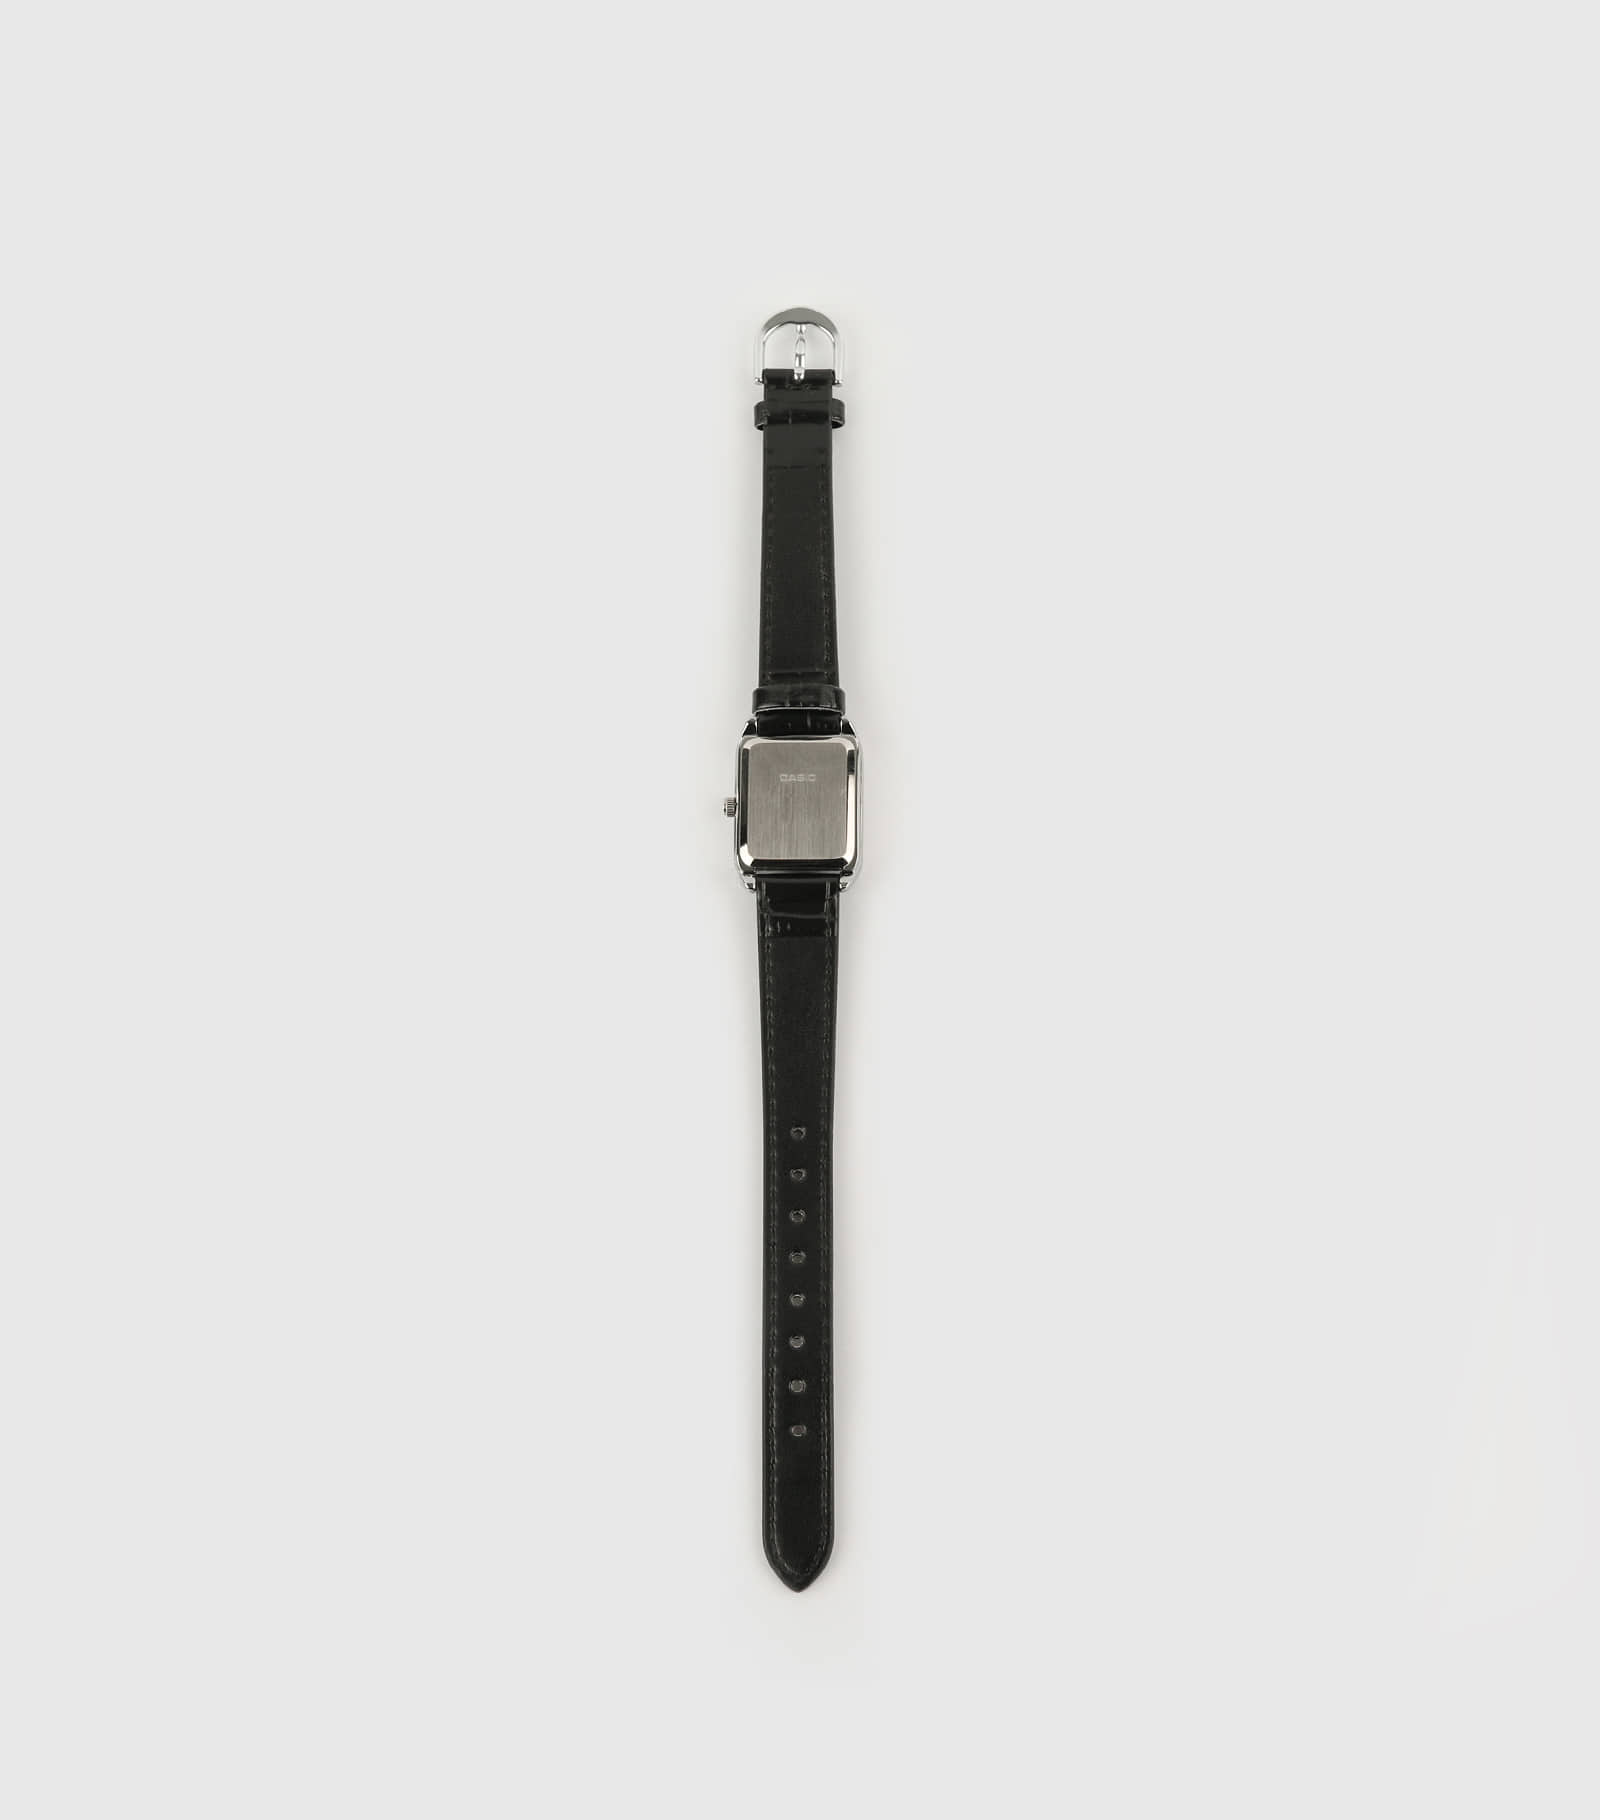 Minimalist black leather watch